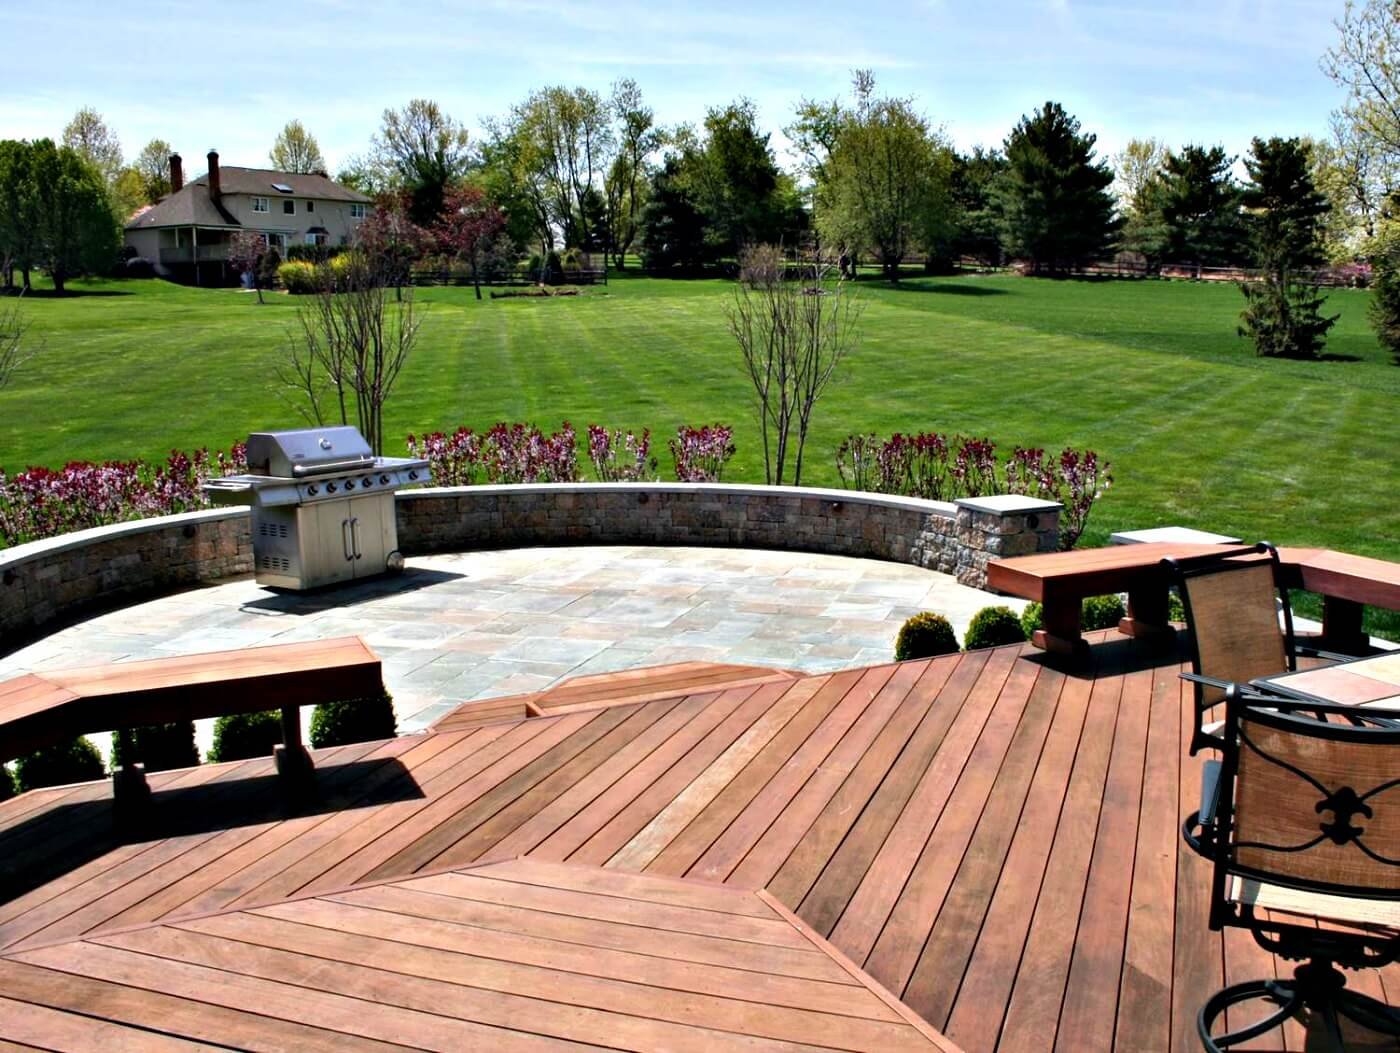 Custom backyard patio and wood deck with outdoor kitchen